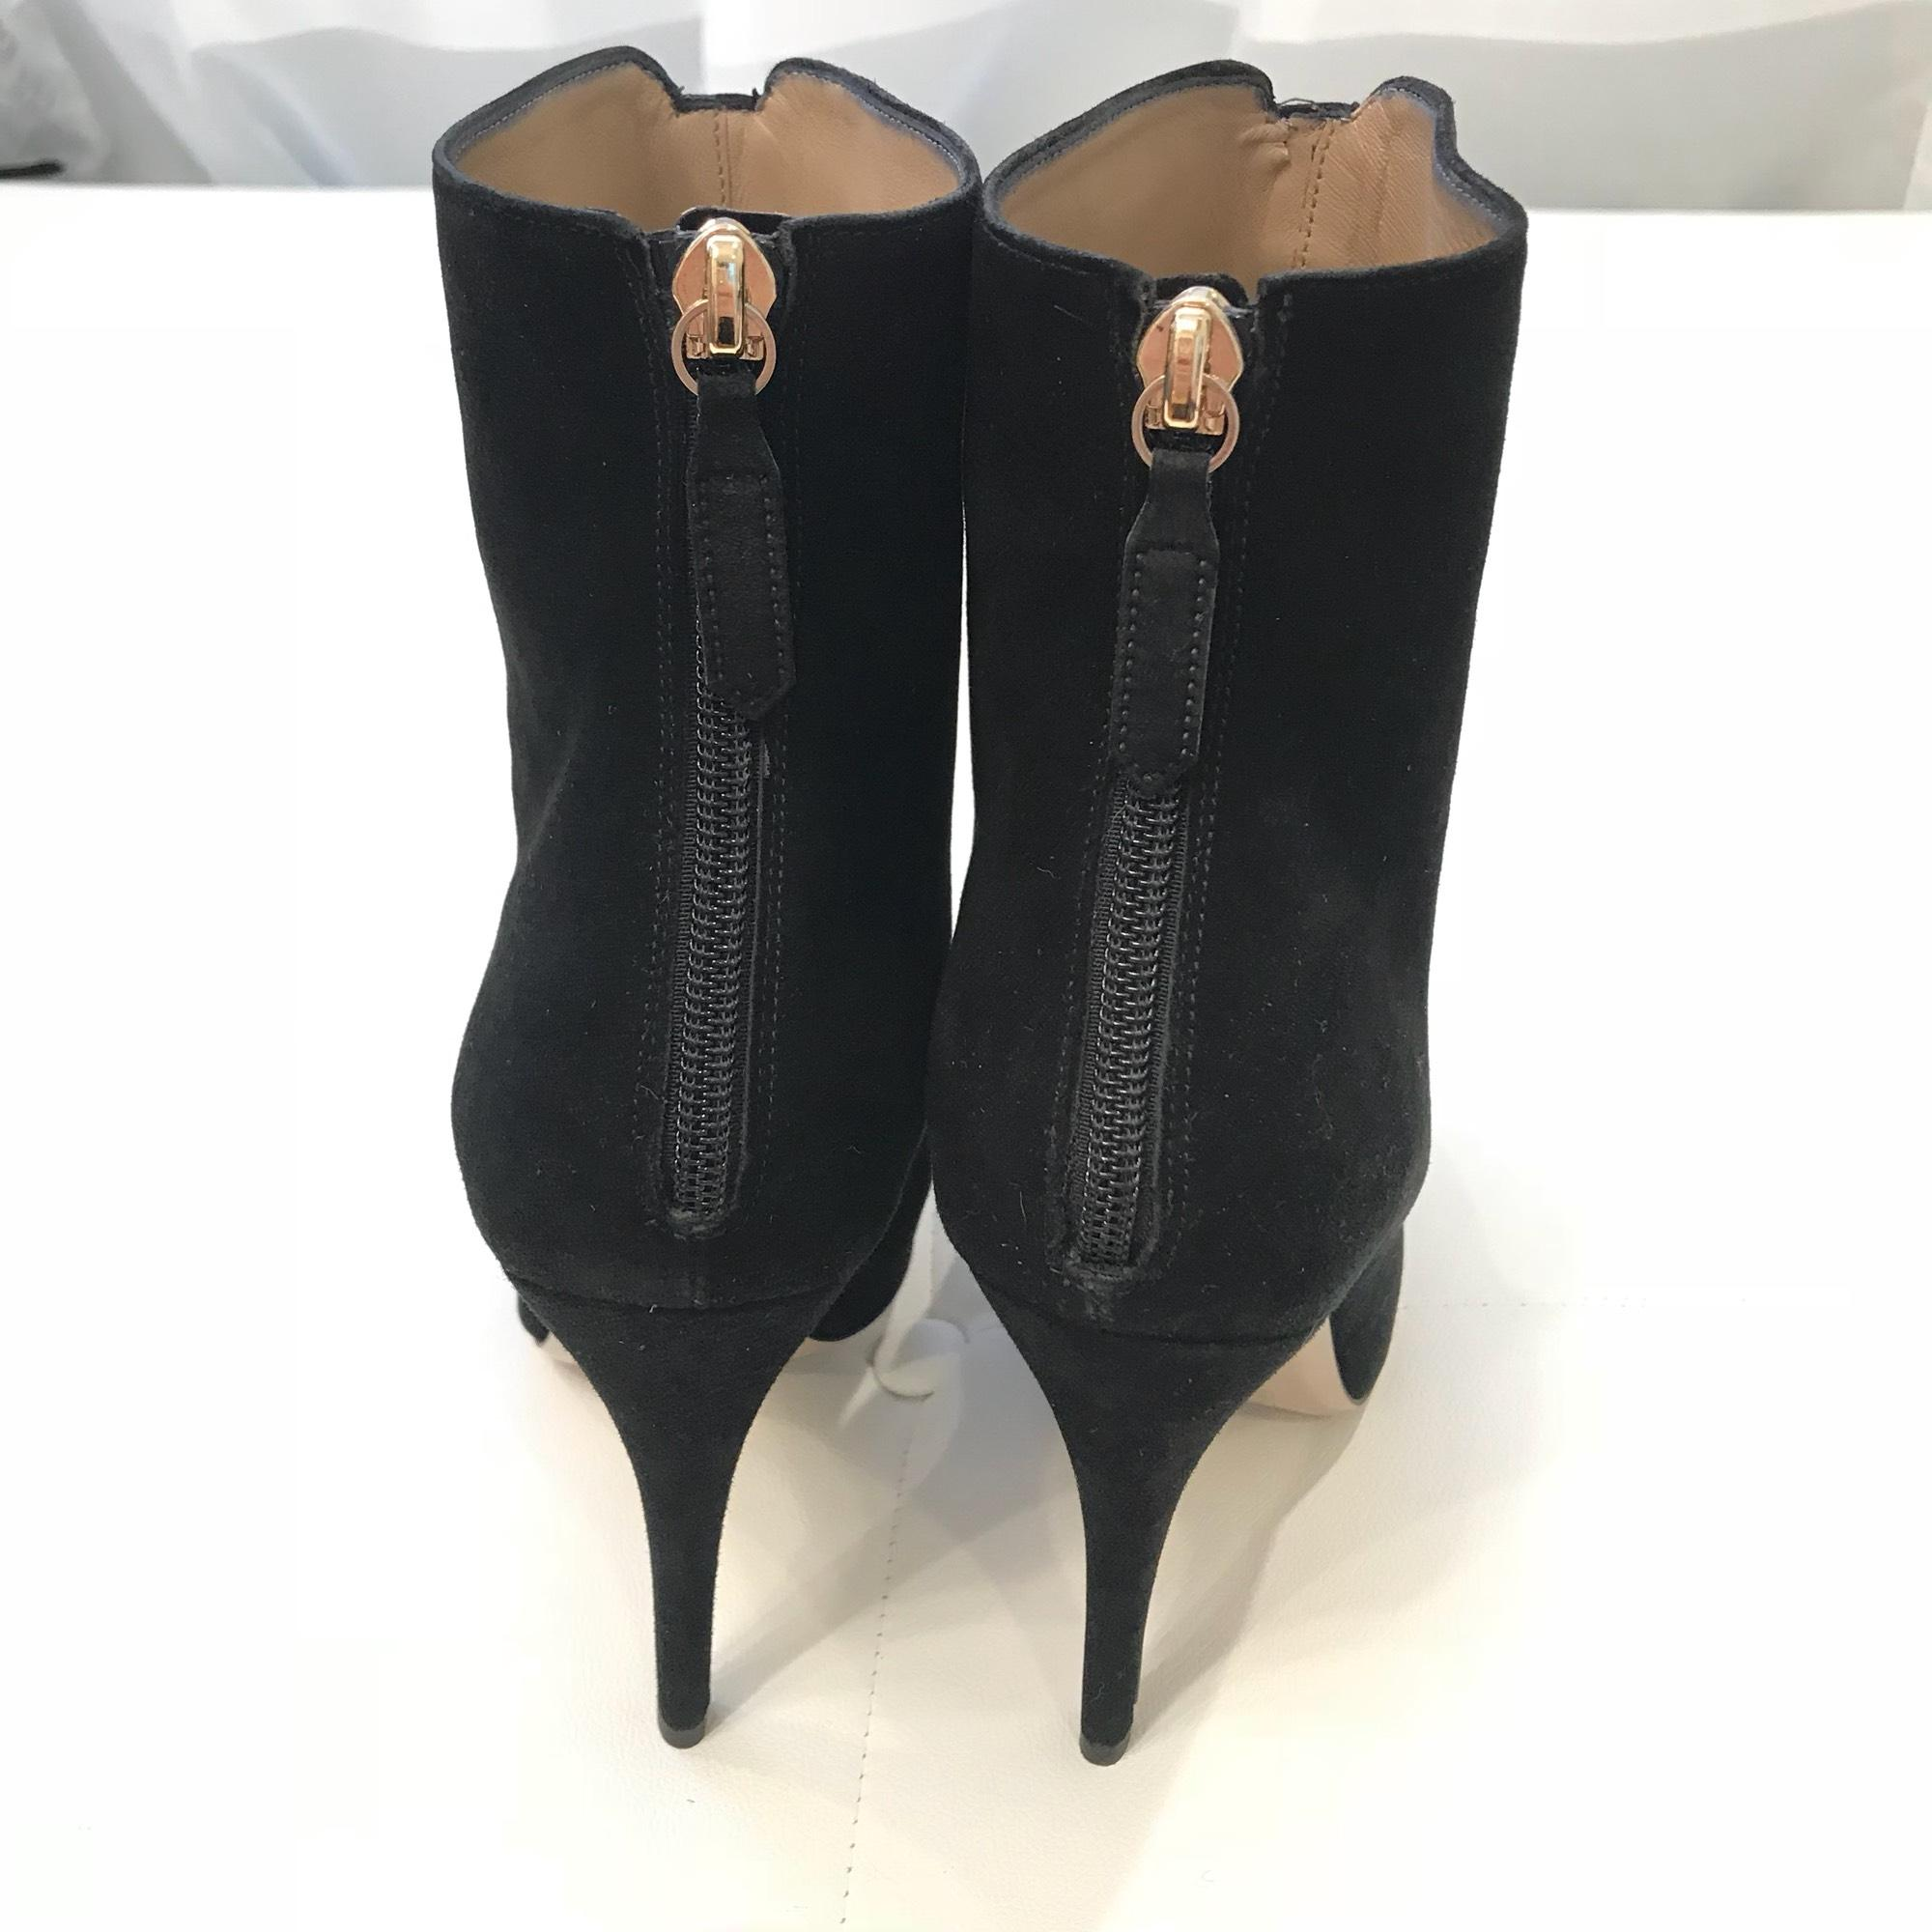 7acd64bc43e2 ... Valentino Black Suede Rockstud Boots Booties Boots Booties  Boots Booties Size EU 40 ...